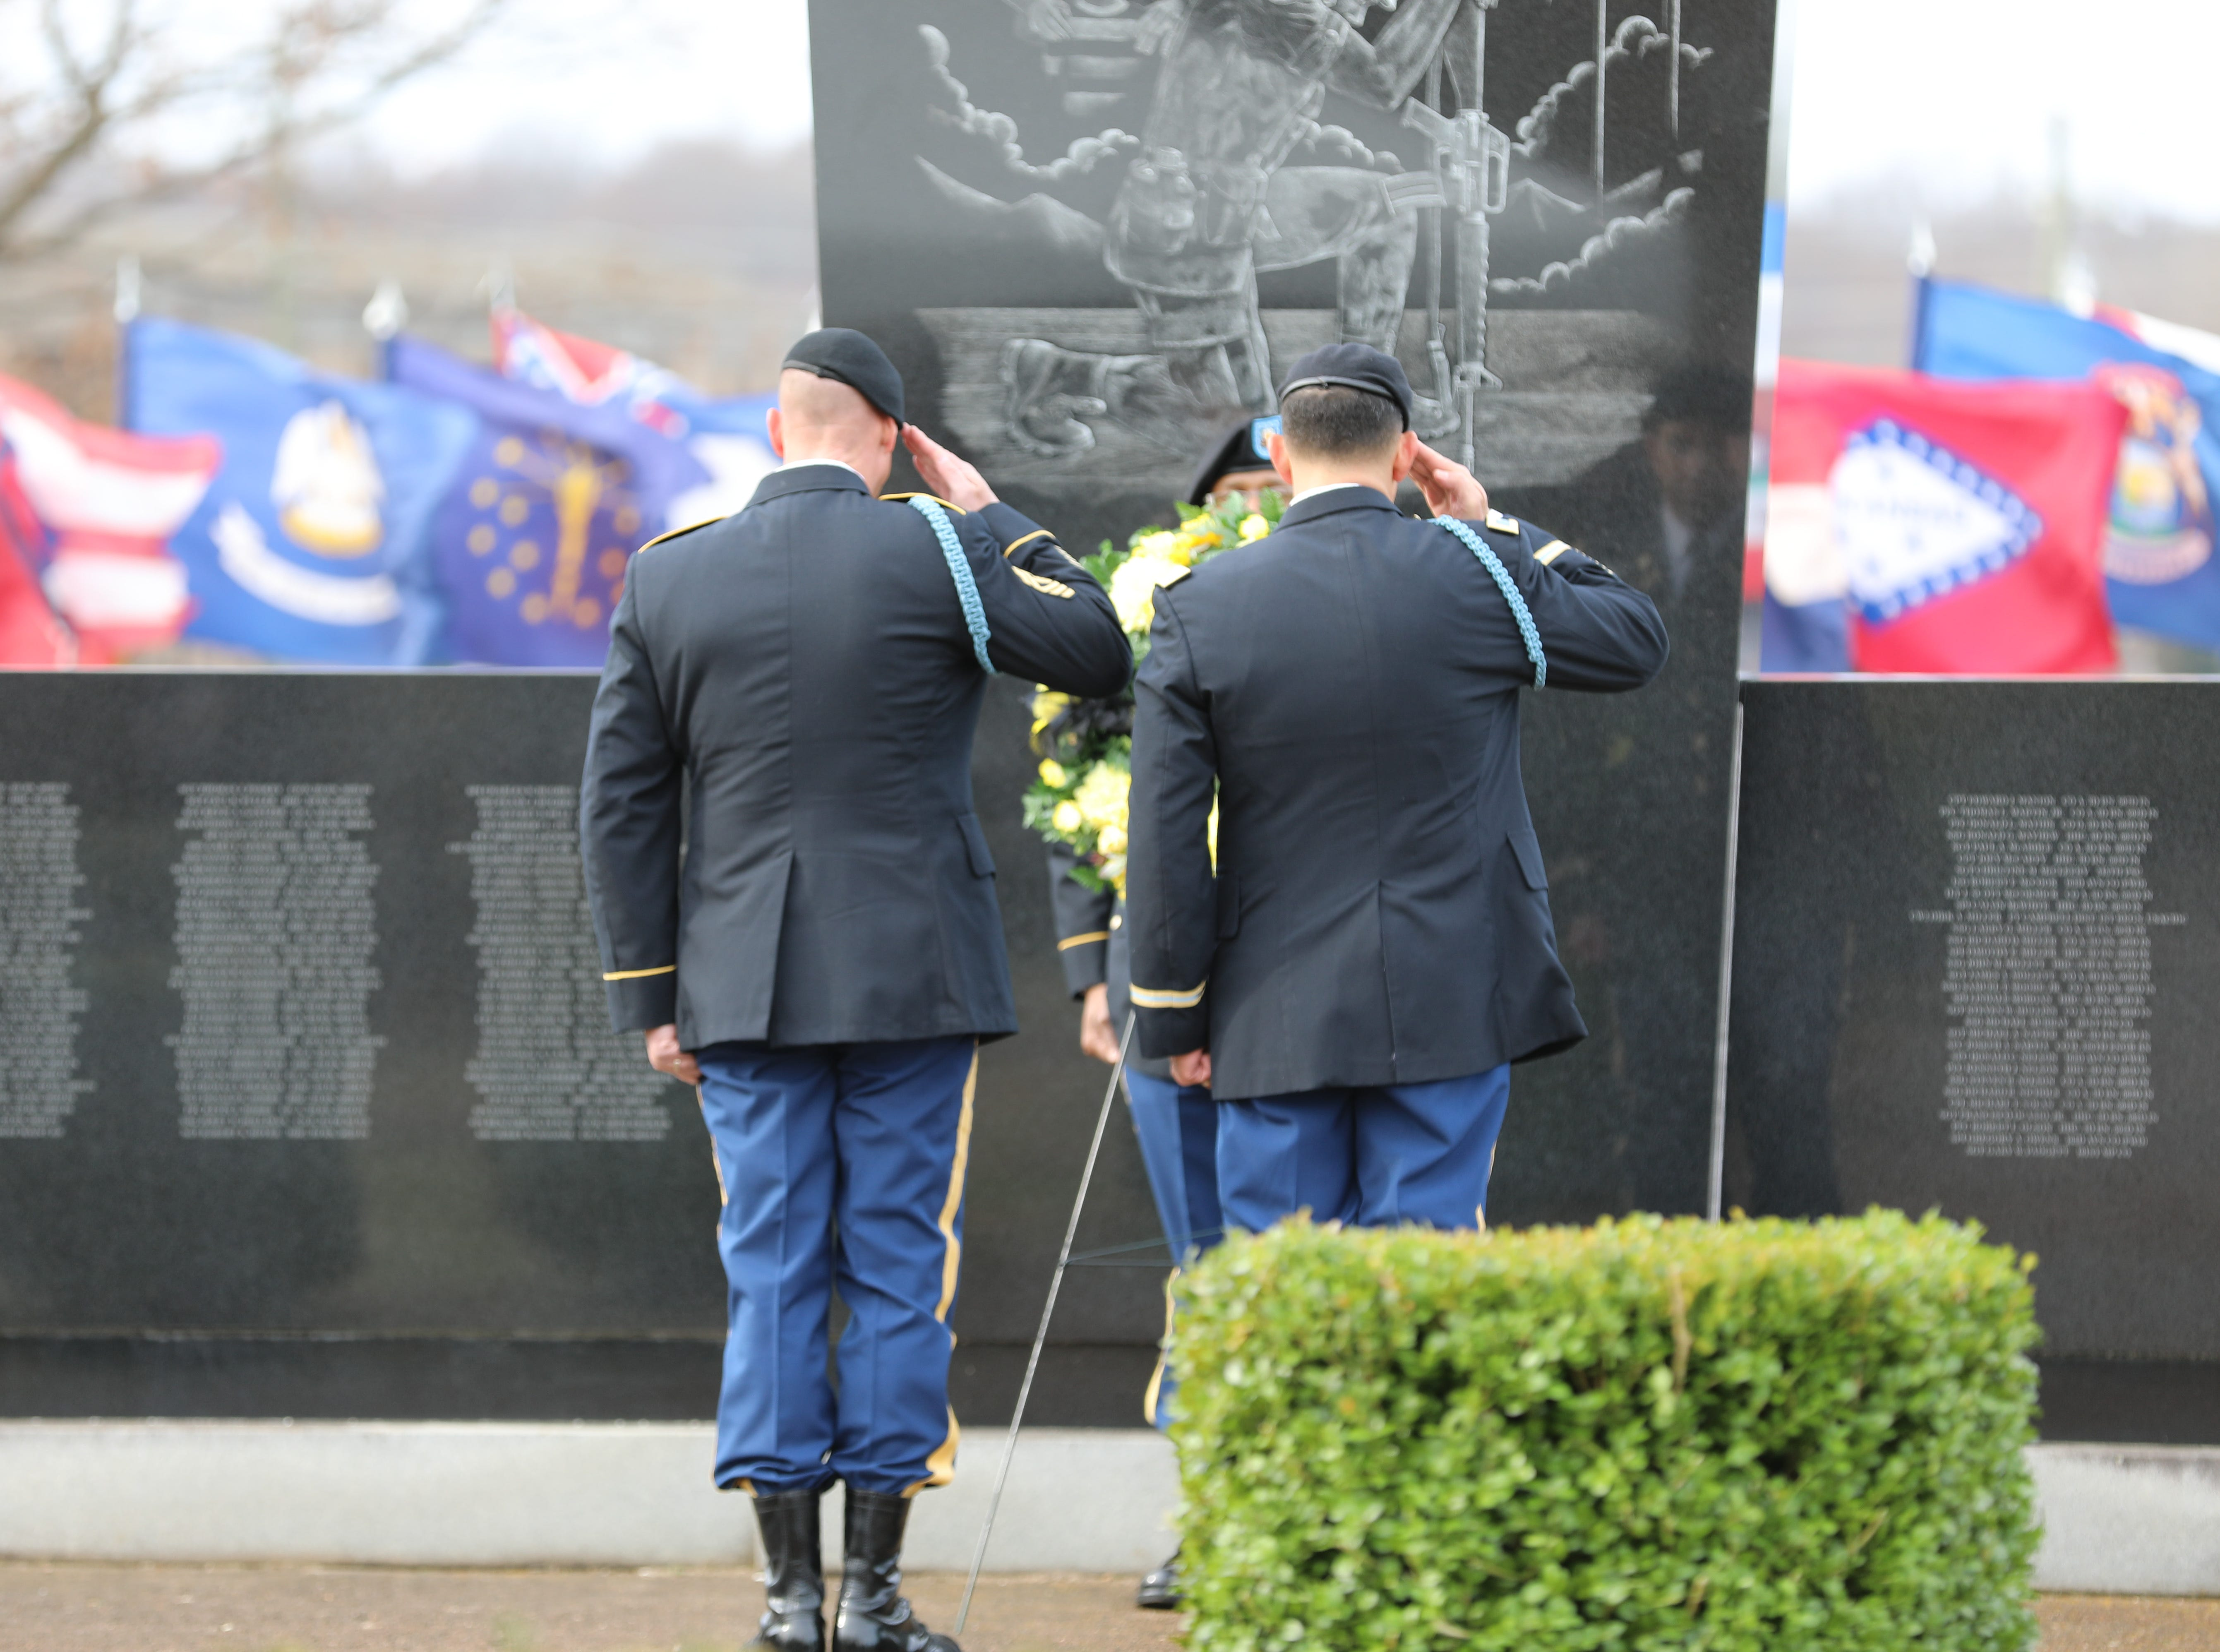 Col. Joseph Escandon and CSM Thomas R. Conn Jr. salute the Gander Memorial after laying the wreath at Fort Campbell, KY Dec. 12, 2018.